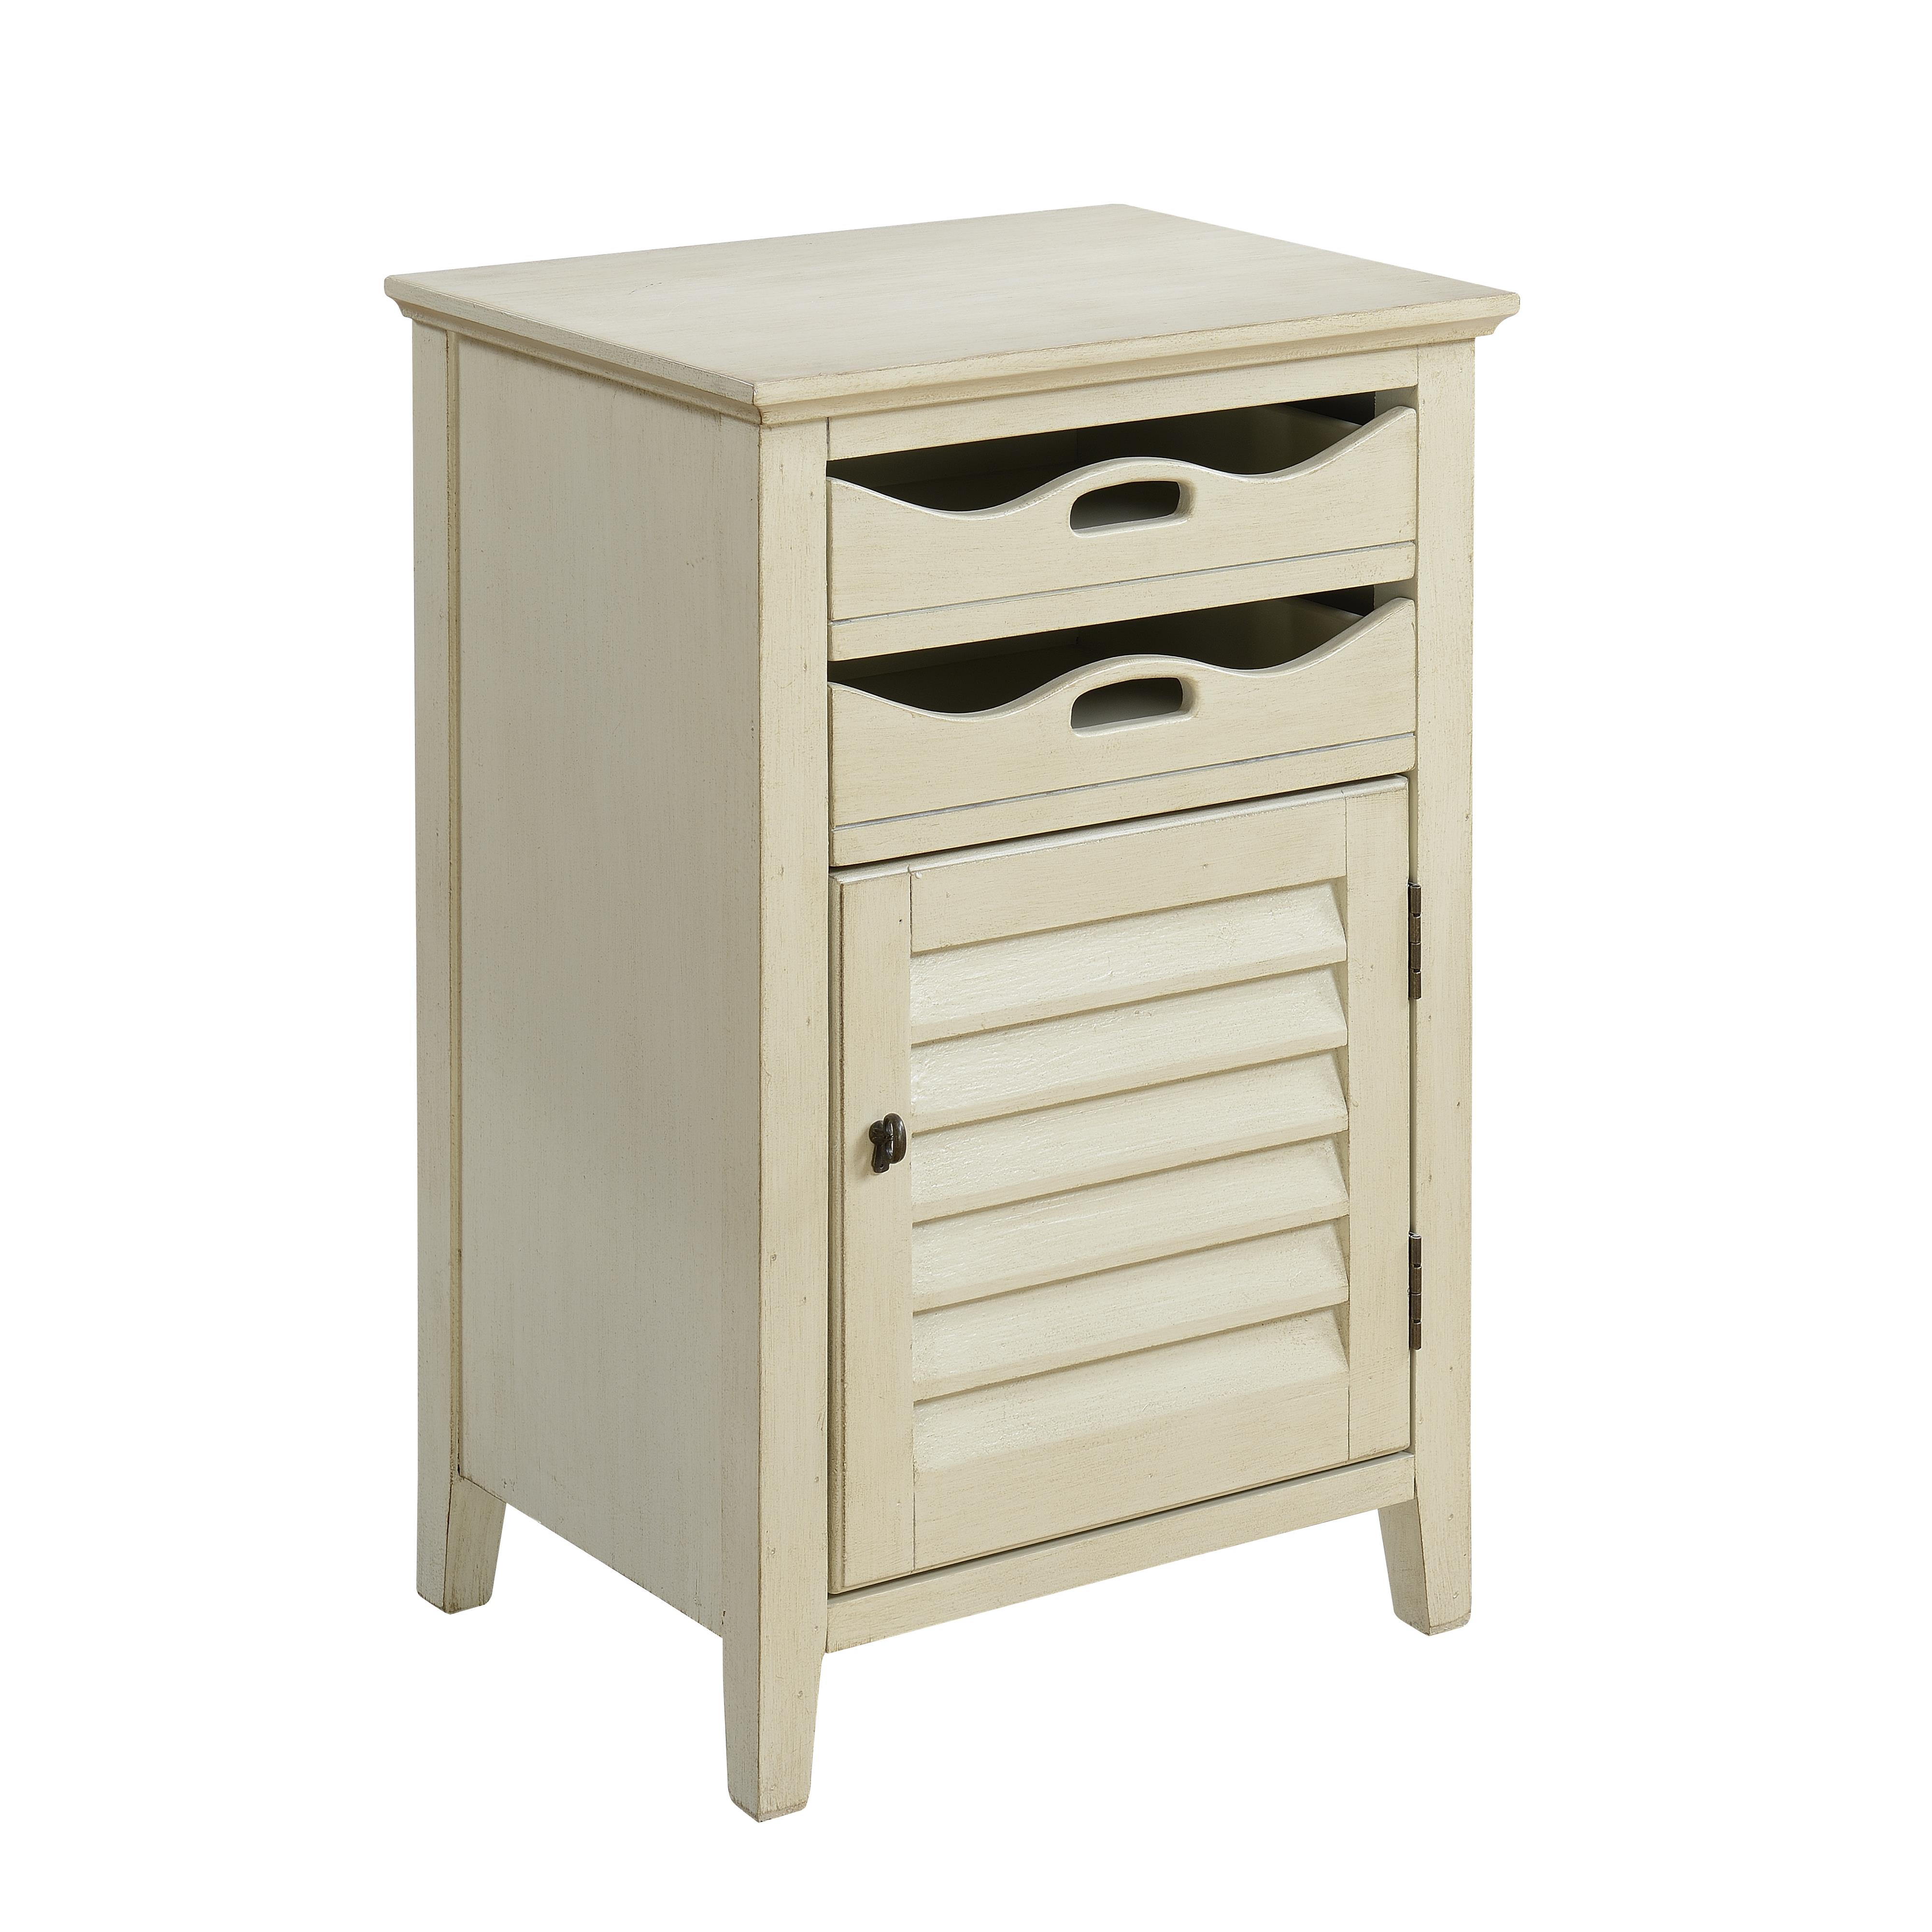 Coast to Coast Imports Coast to Coast Accents One Door Two Drawer Cabinet - Item Number: 70737